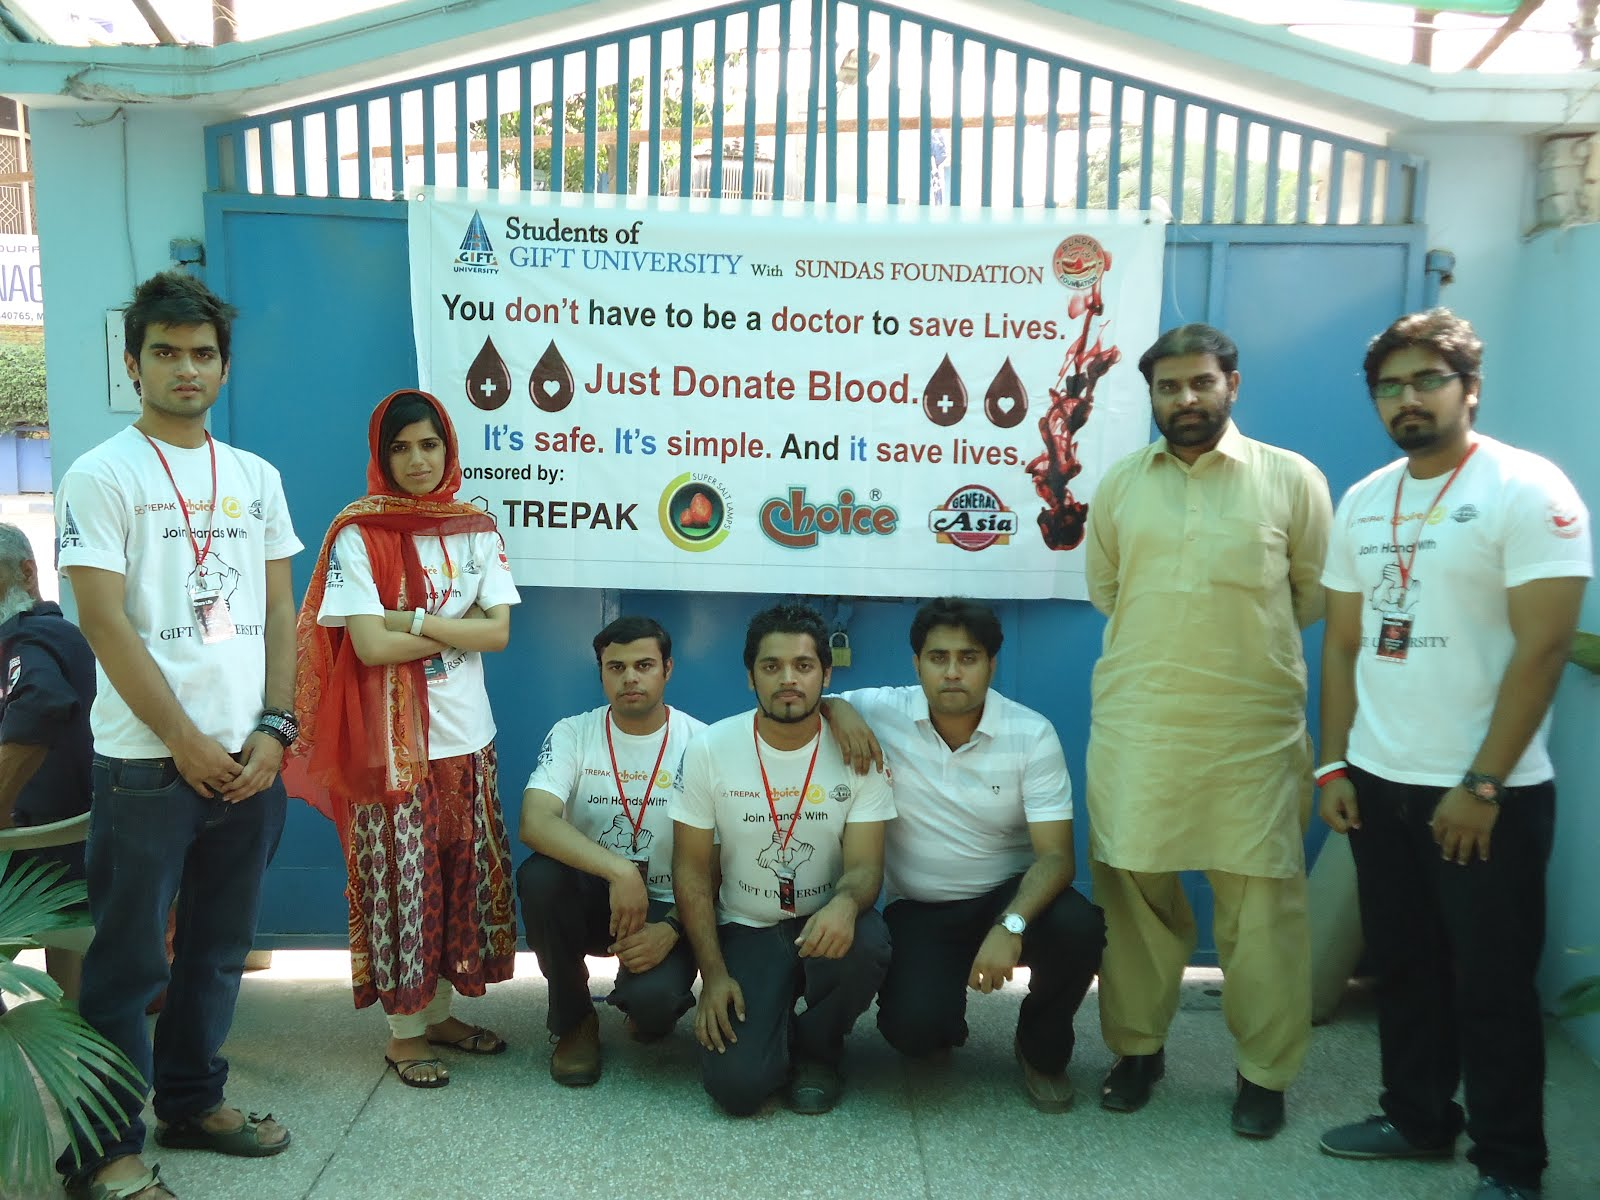 Jumbo infomedia blog gift universitys students organize blood the gift university students proved it once again that they are committed in saving the lives of the needy childrens that are in severe blood diseases like negle Image collections